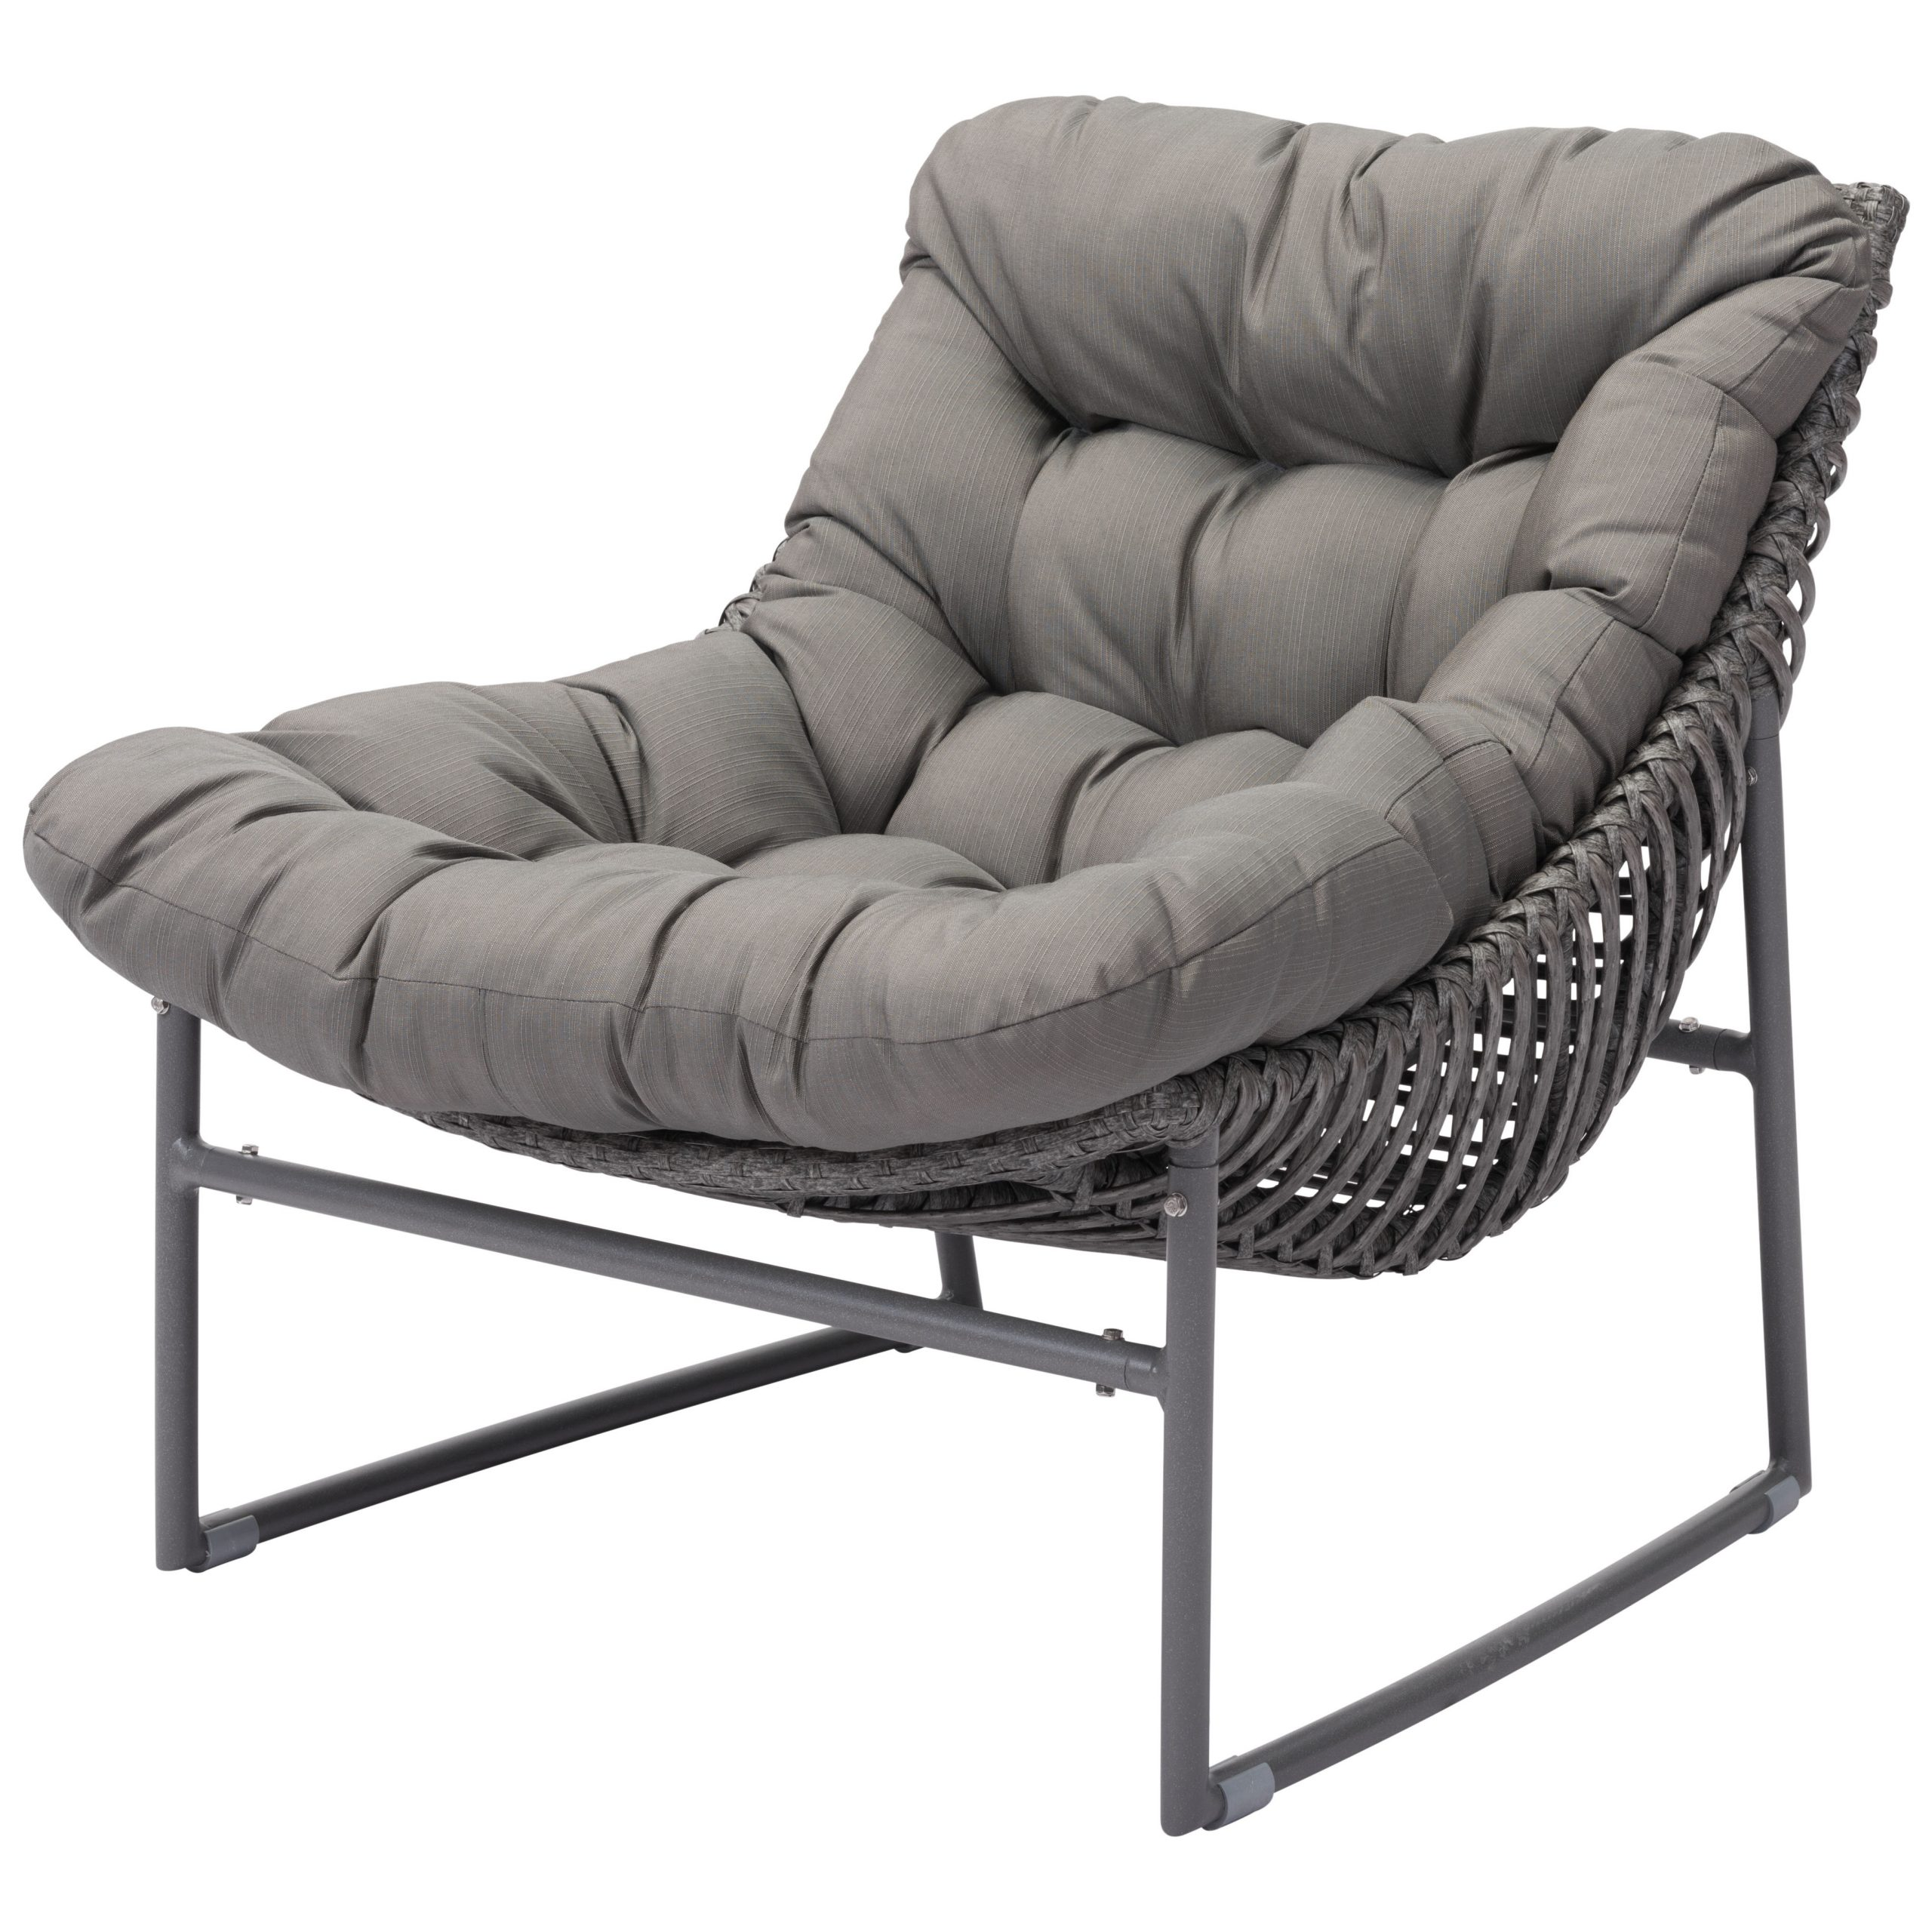 Brayden Studio Repp Beach Chair With Cushion Within Most Up To Date Repp Patio Sofas With Cushion (View 4 of 25)